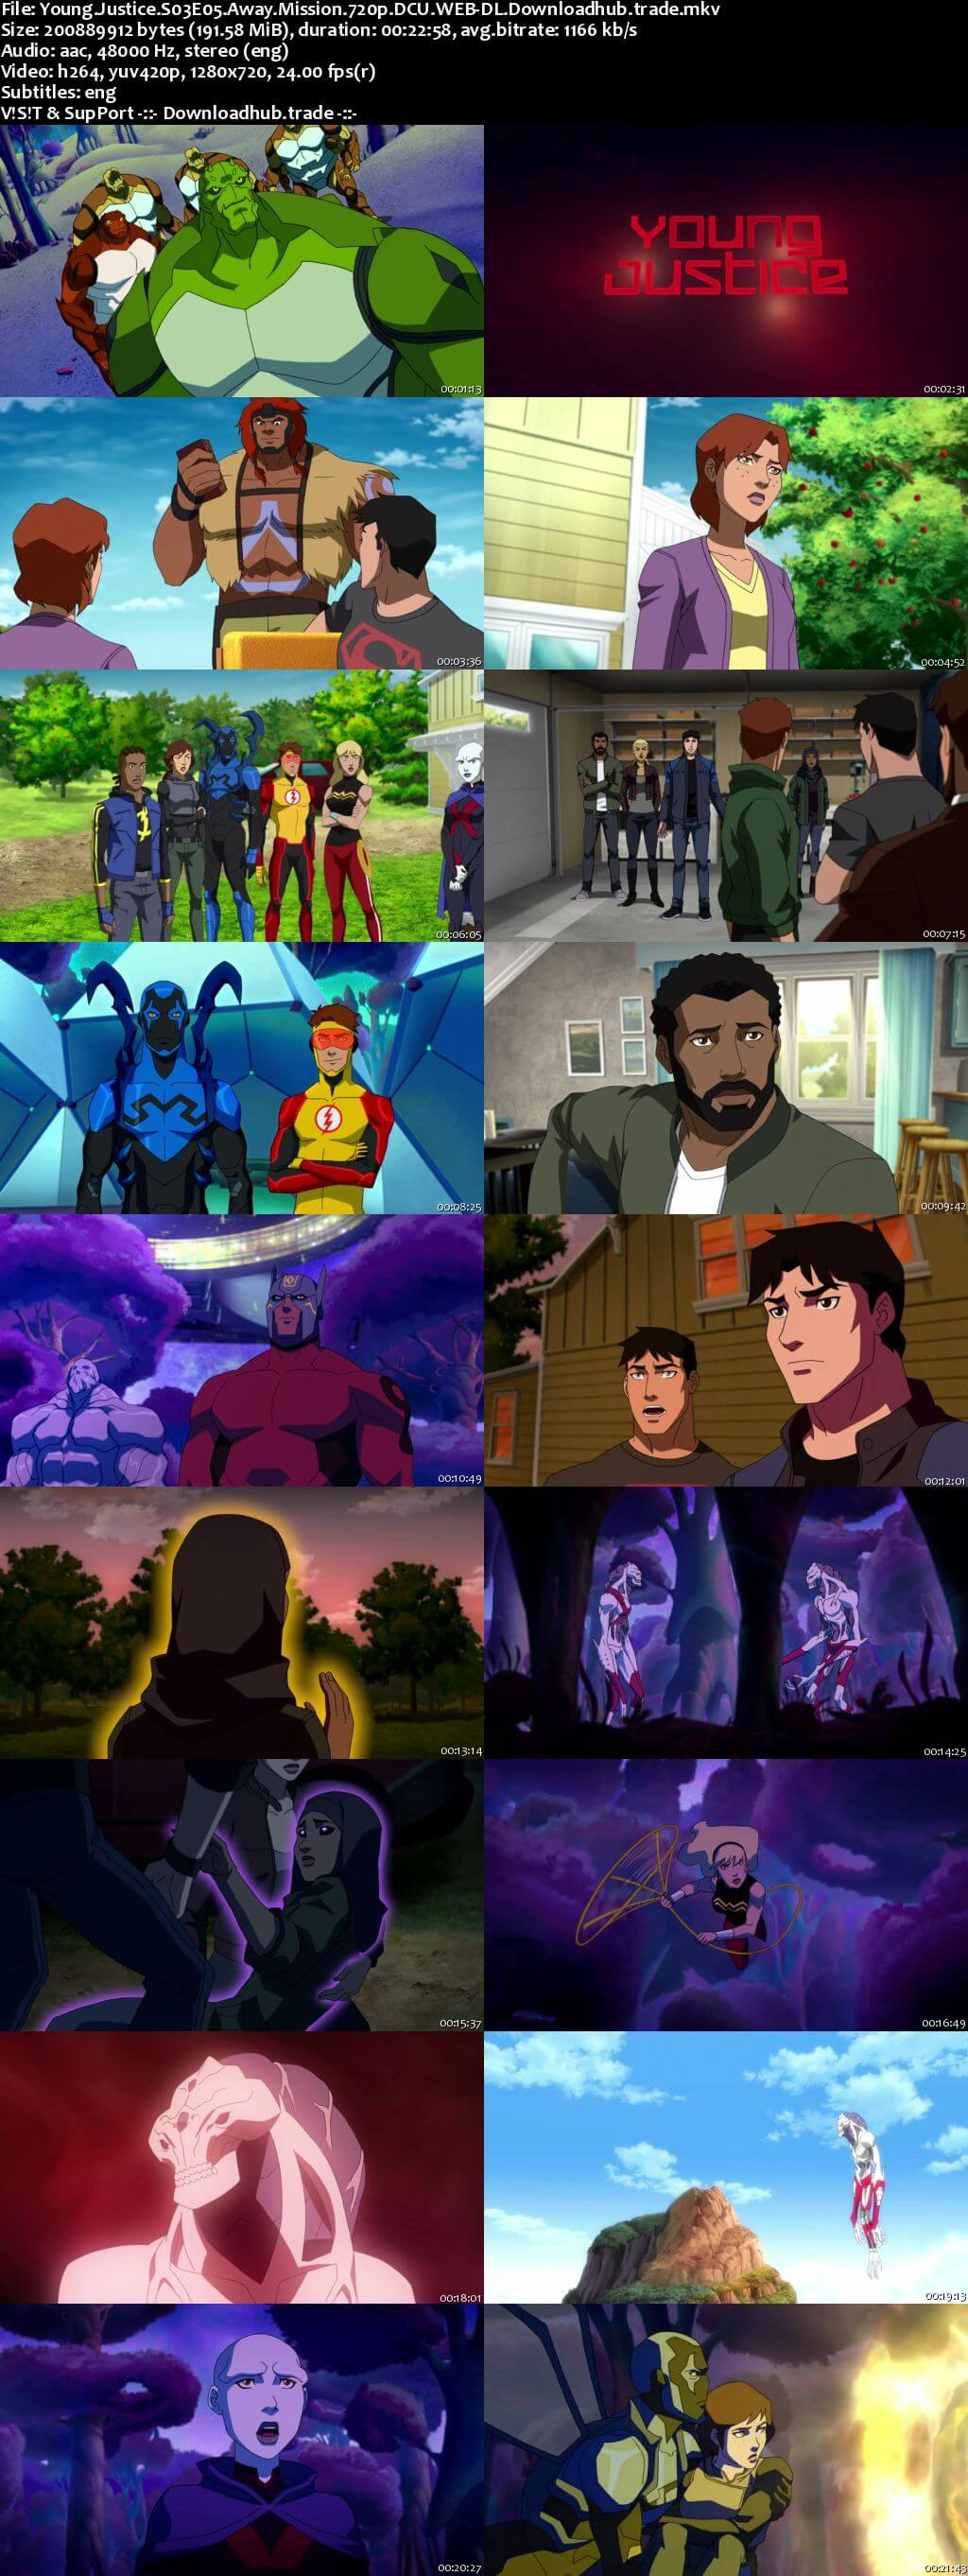 Young Justice S03E05 190MB DCU WEB-DL 720p ESubs